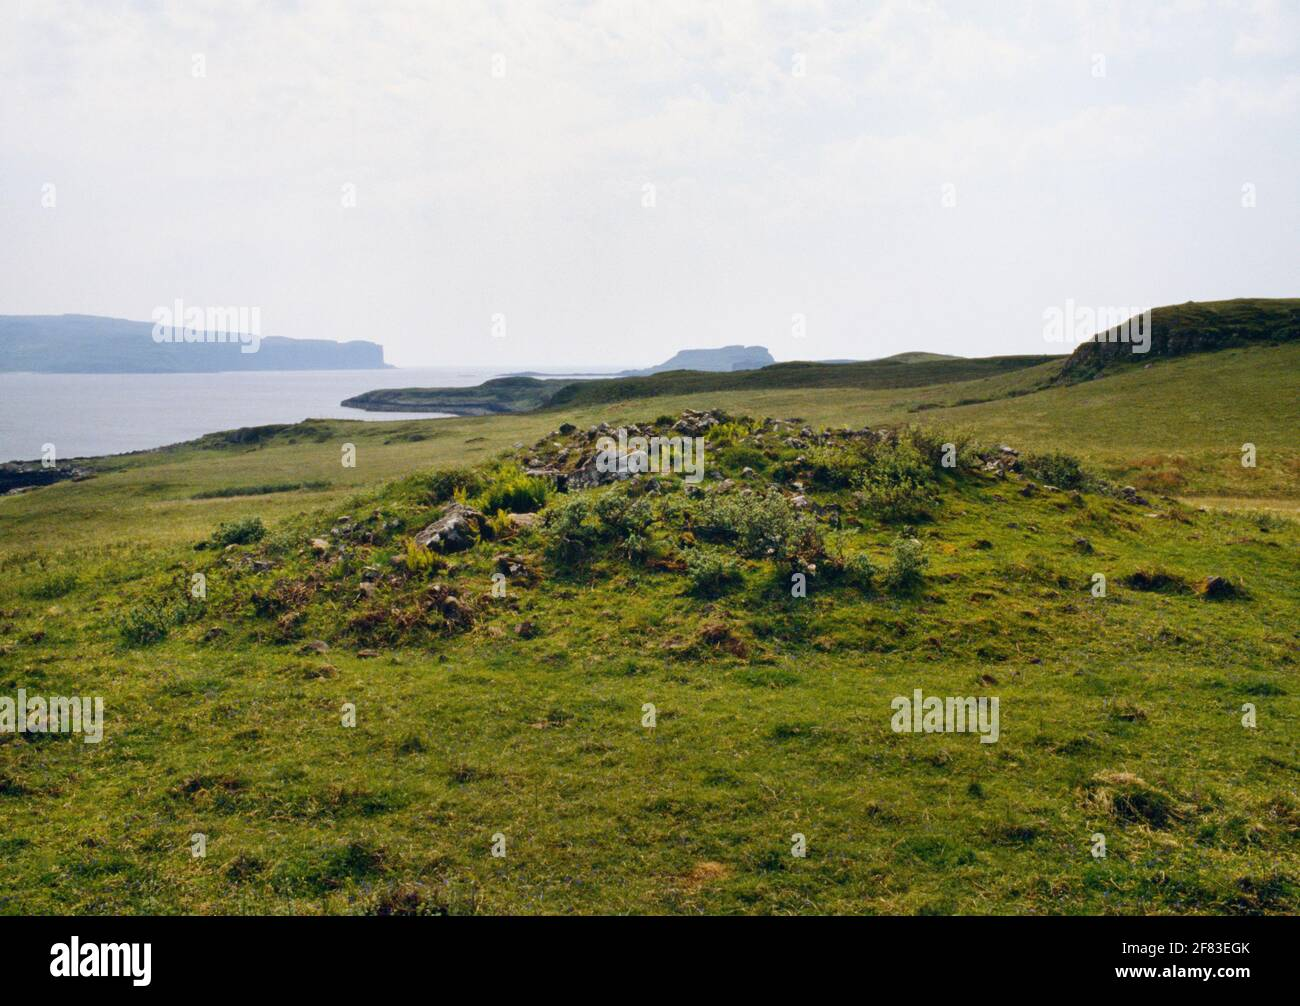 View SW of the remains of Struanmore Neolithic chambered tomb, Bracadale, Isle of Skye, Scotland, UK: Ardtreck Point rear L & Oronsay island rear R. Stock Photo